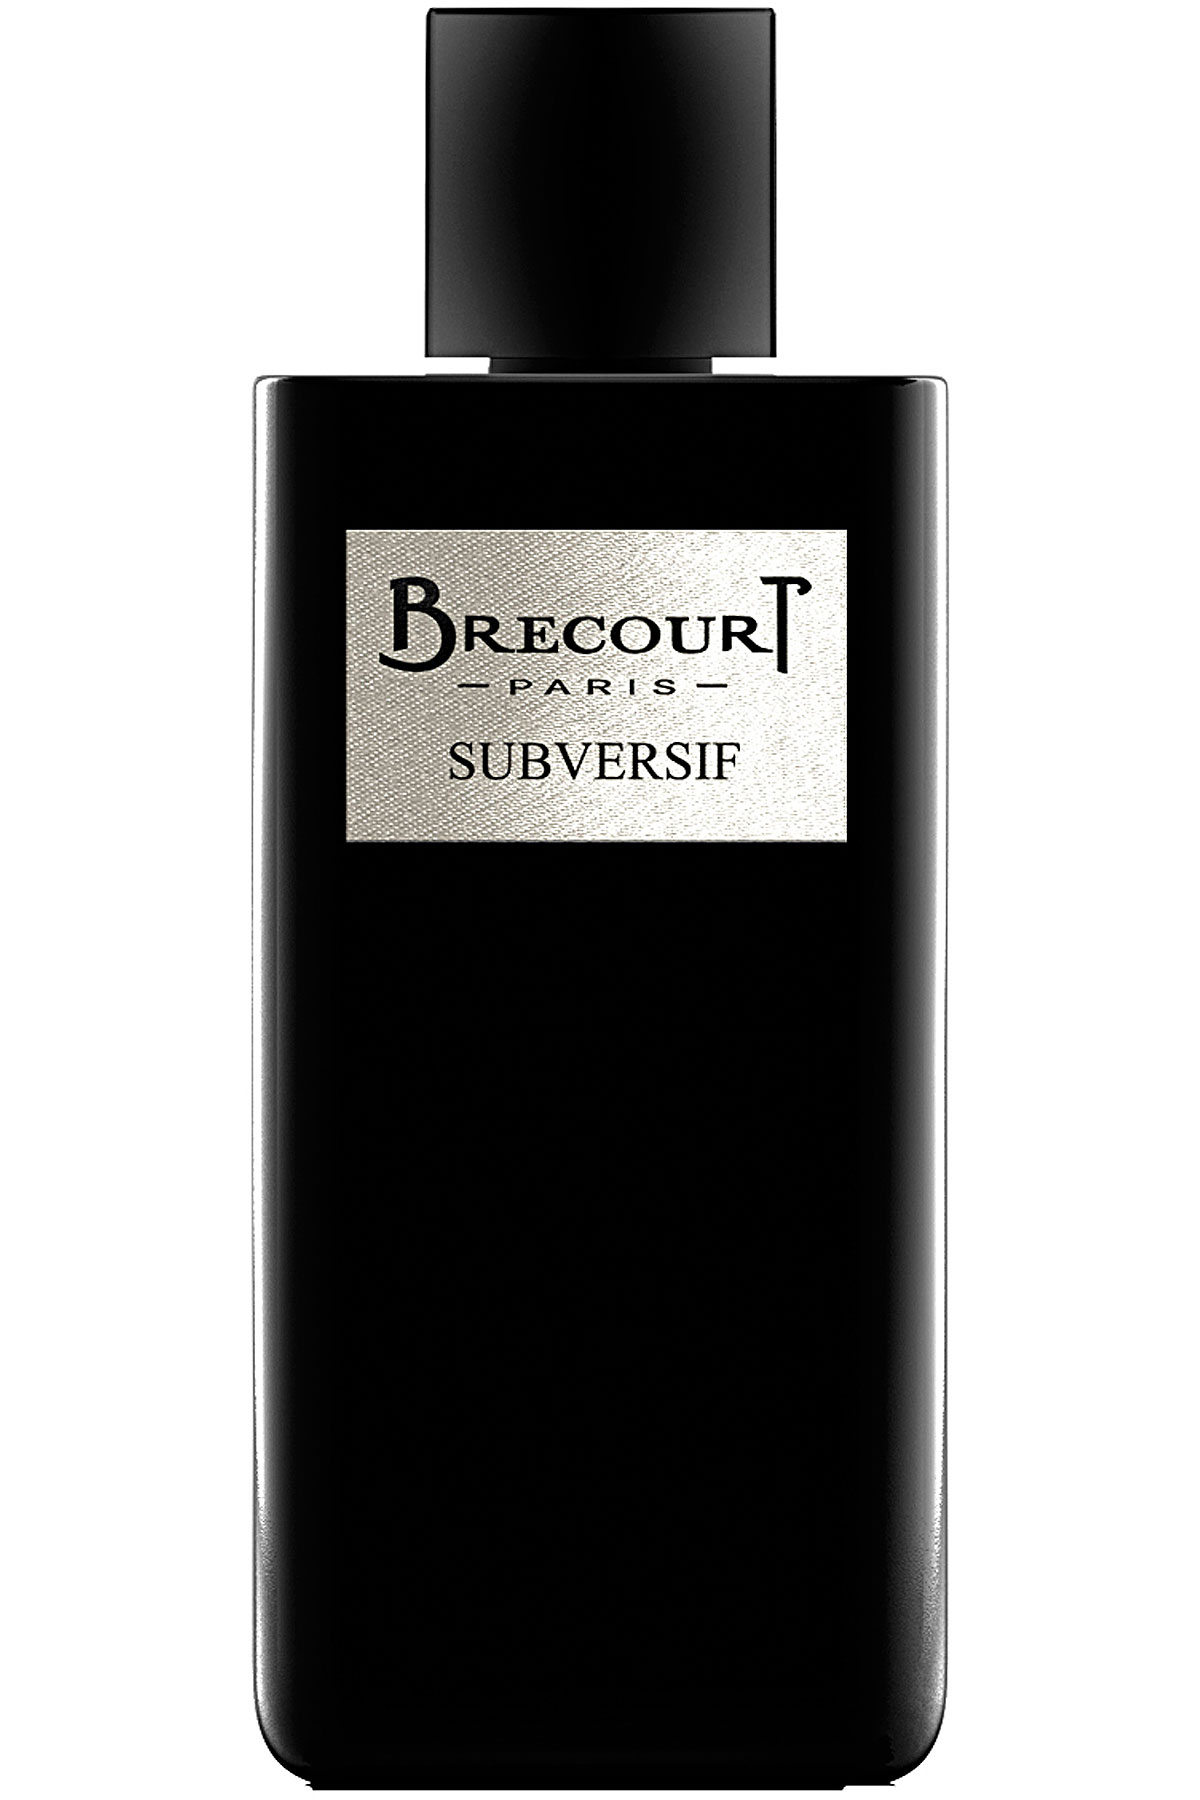 Brecourt Fragrances for Men, Subversif Eau De Parfum 100 Ml, 2019, 100 ml